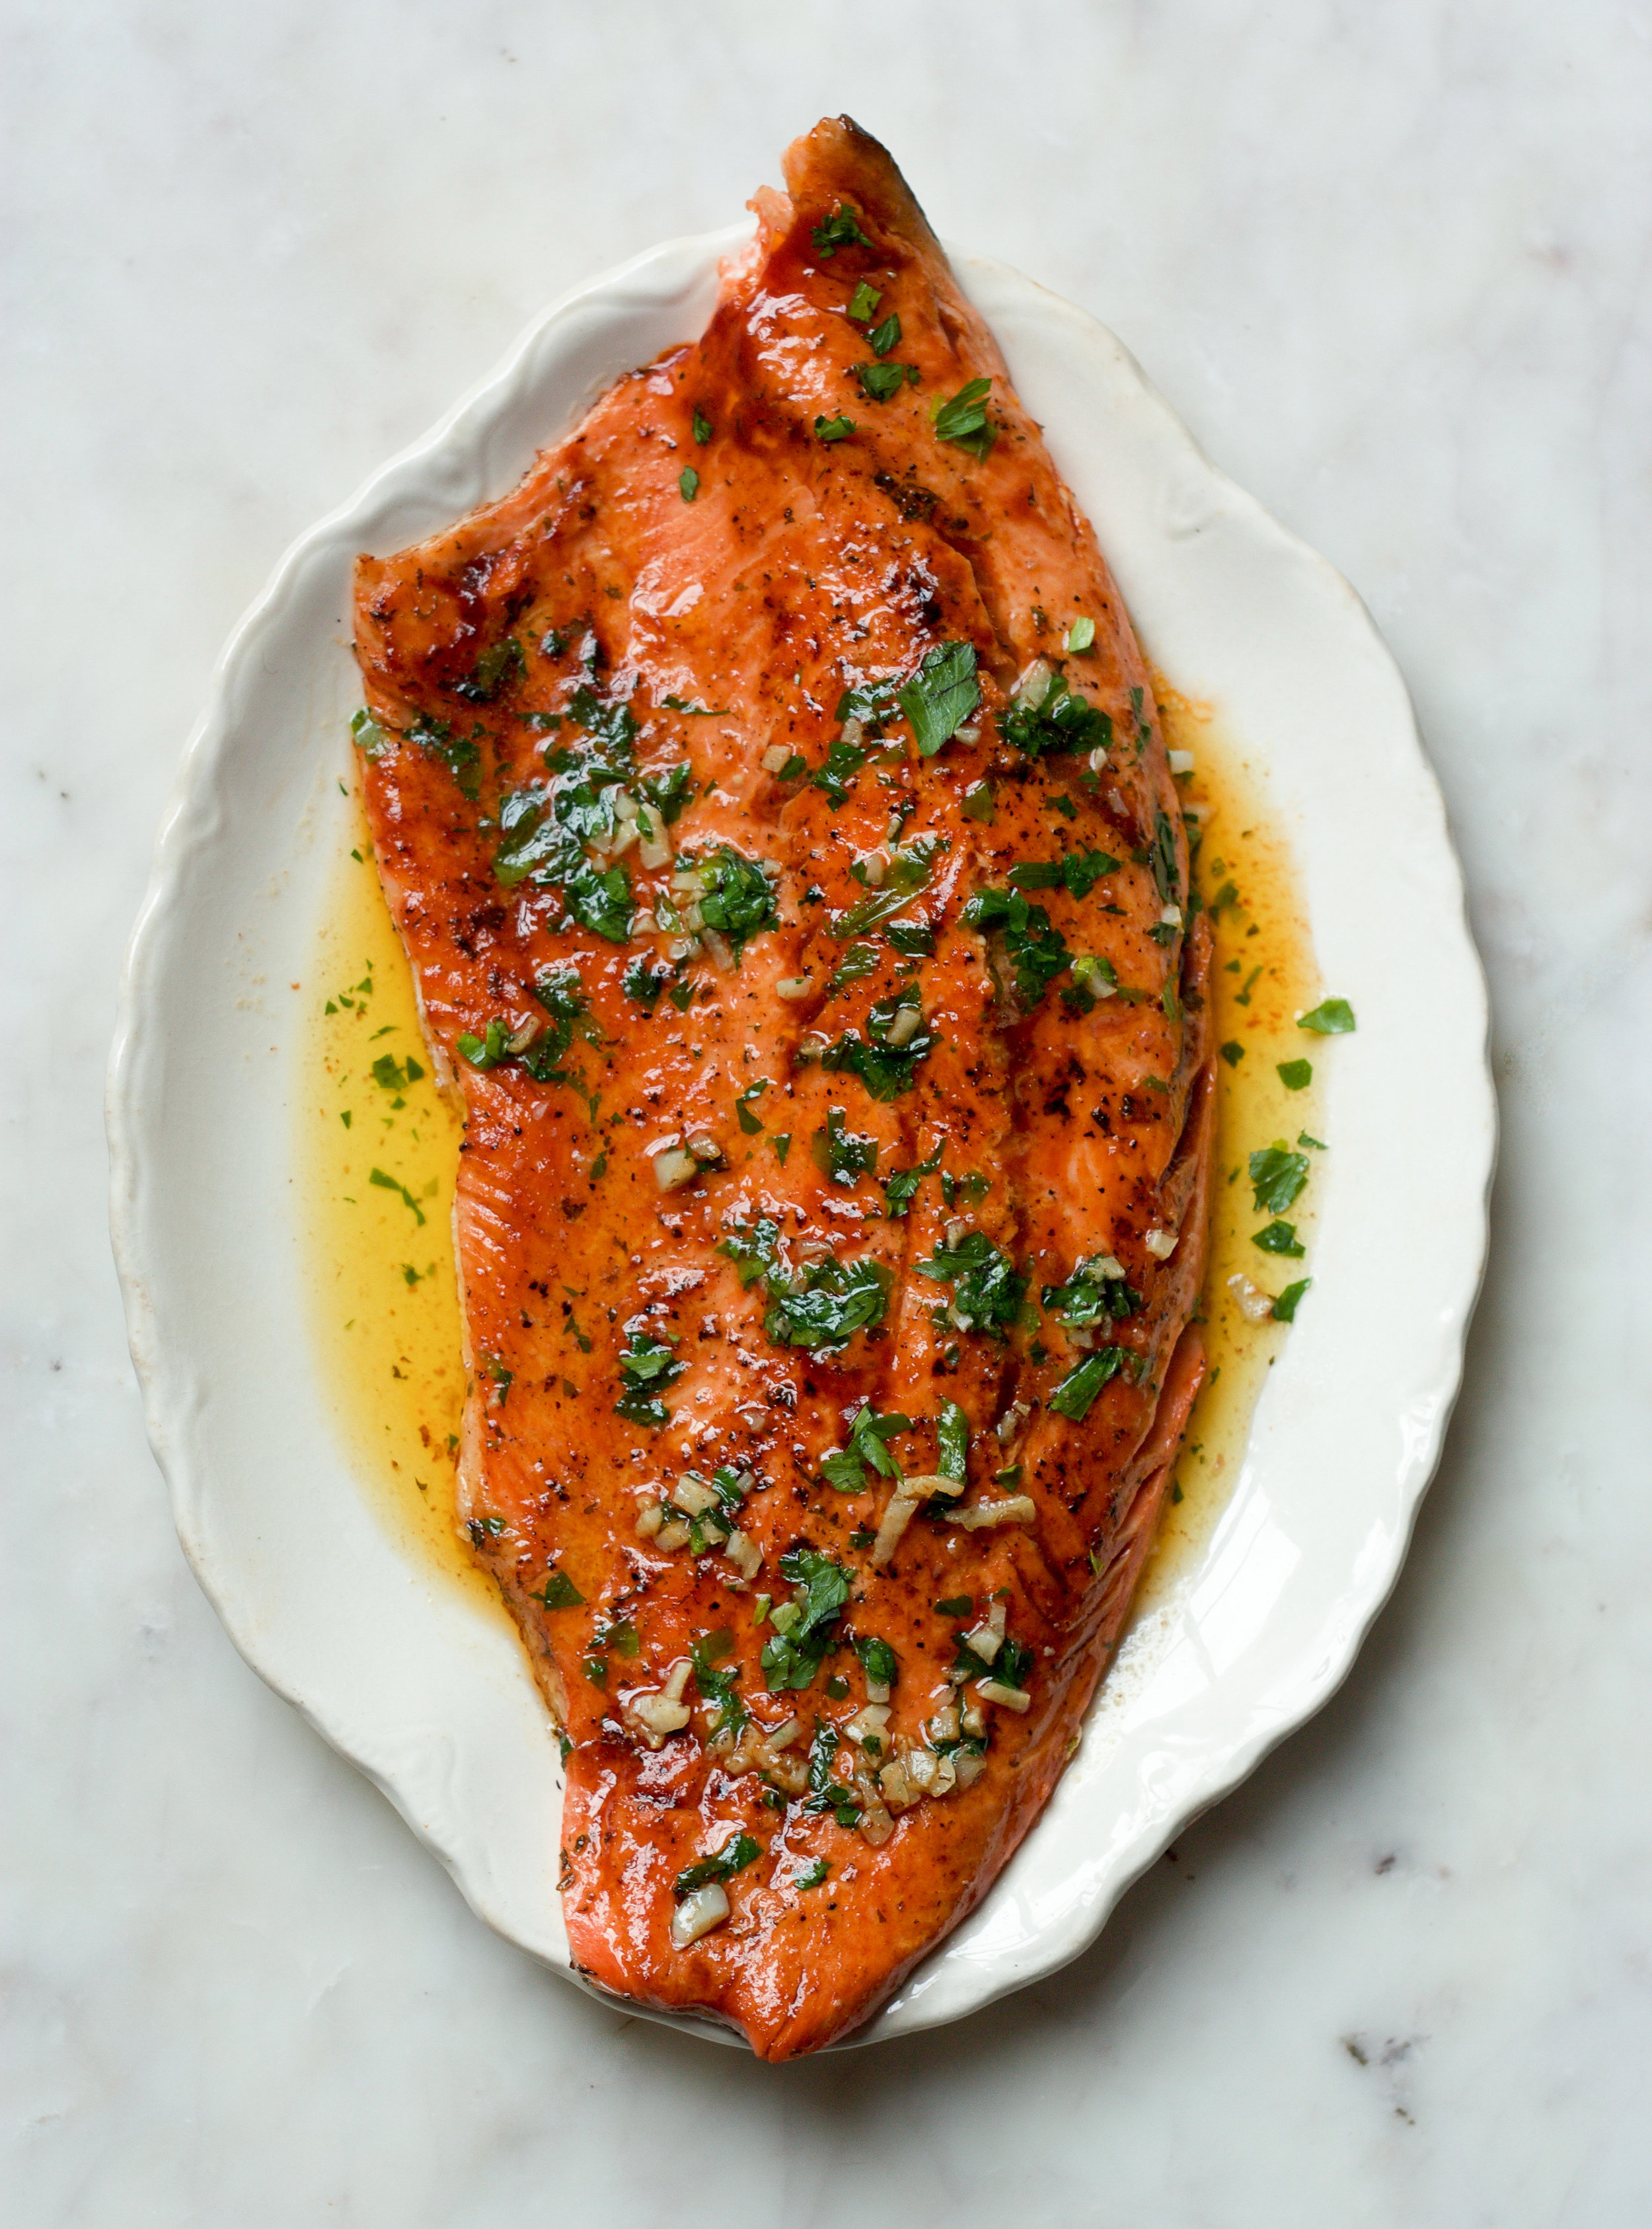 "Ingredients:   1 side of steelhead trout (roughly 2lbs)  4 cloves fresh garlic, diced  3 tbsp salted butter  1 tbsp Korean G ochujang paste   2 tbsp honey  1/2 cup chopped parsley  Method:  In a small bowl, add kochujang, honey and parsley, stir to combine and set aside.  Heat a 12"" non-stick skillet to medium-high. Add butter and garlic and cook for 1 minute until melted and just bubbling. Place trout in pan skin side down, making sure that every surface of flesh is touching the pan. Cook for 3-5 minutes and flip.  While the skin side is cooking (3 minutes), use a marinade brush to spread kochujang mixture evenly over the flesh side of the trout. Remove pan from heat and place trout under a moderate broiler for 5 minutes. (Alternatively, flip the fish over once more and cook for 1-2 minutes just until the marinade caramelizes slightly). Place on a serving dish along with any pan juices.   Serves 4"